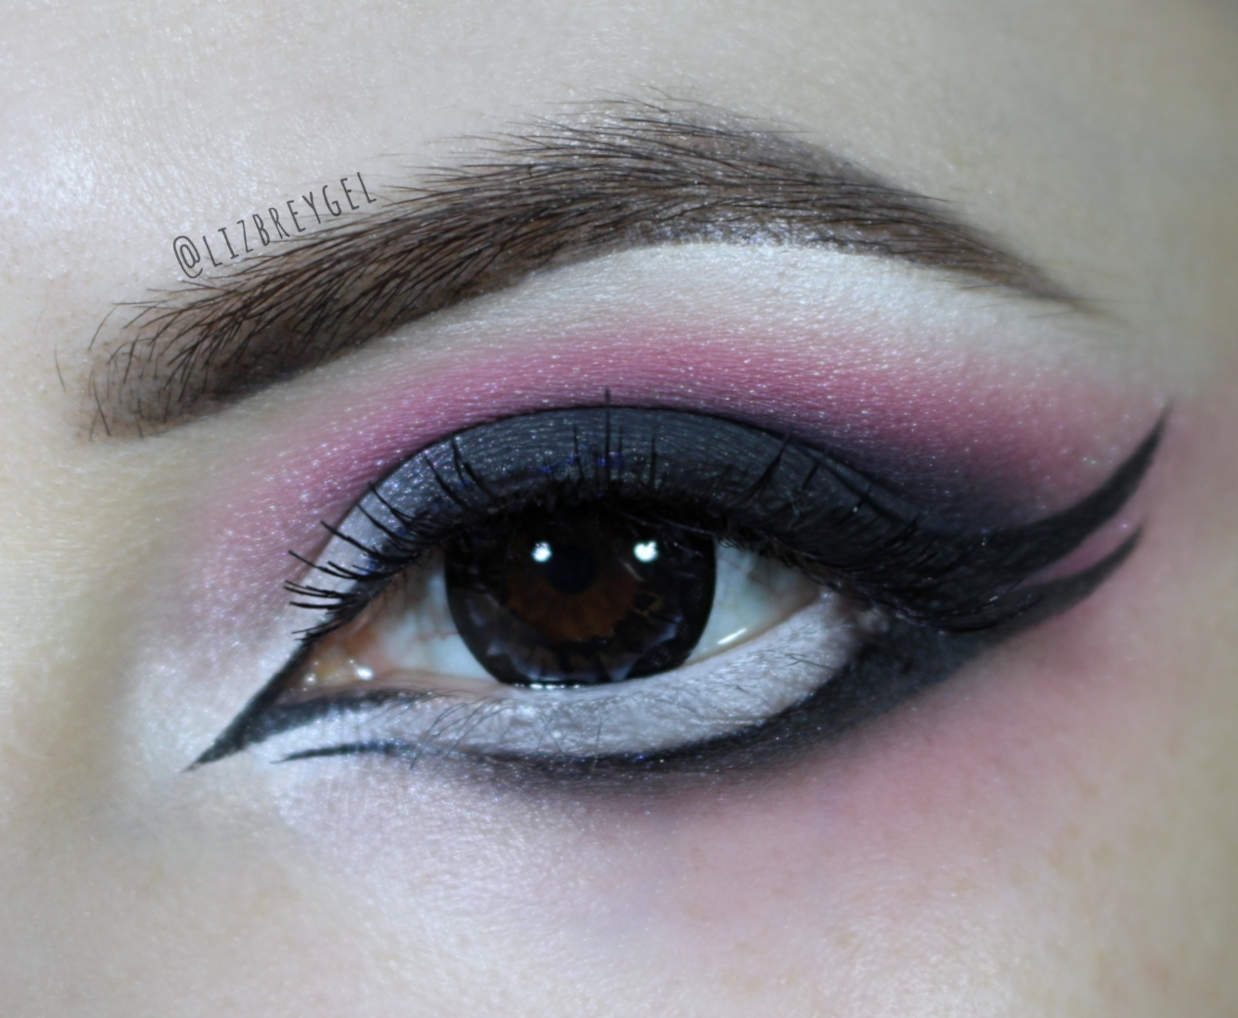 brown eye close up with dramatic Gothic makeup